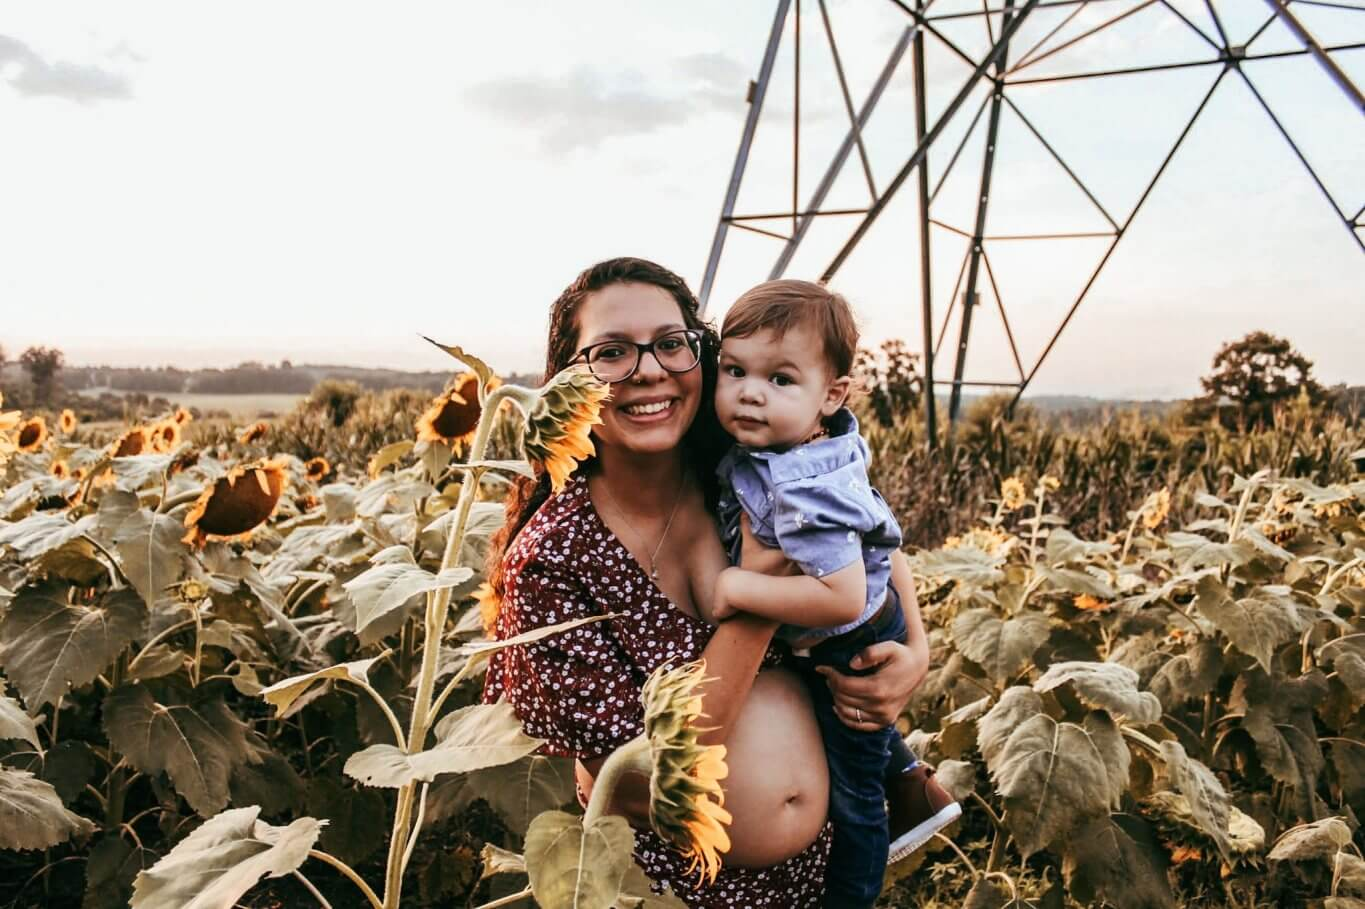 Hellem and Jude in sunflower field